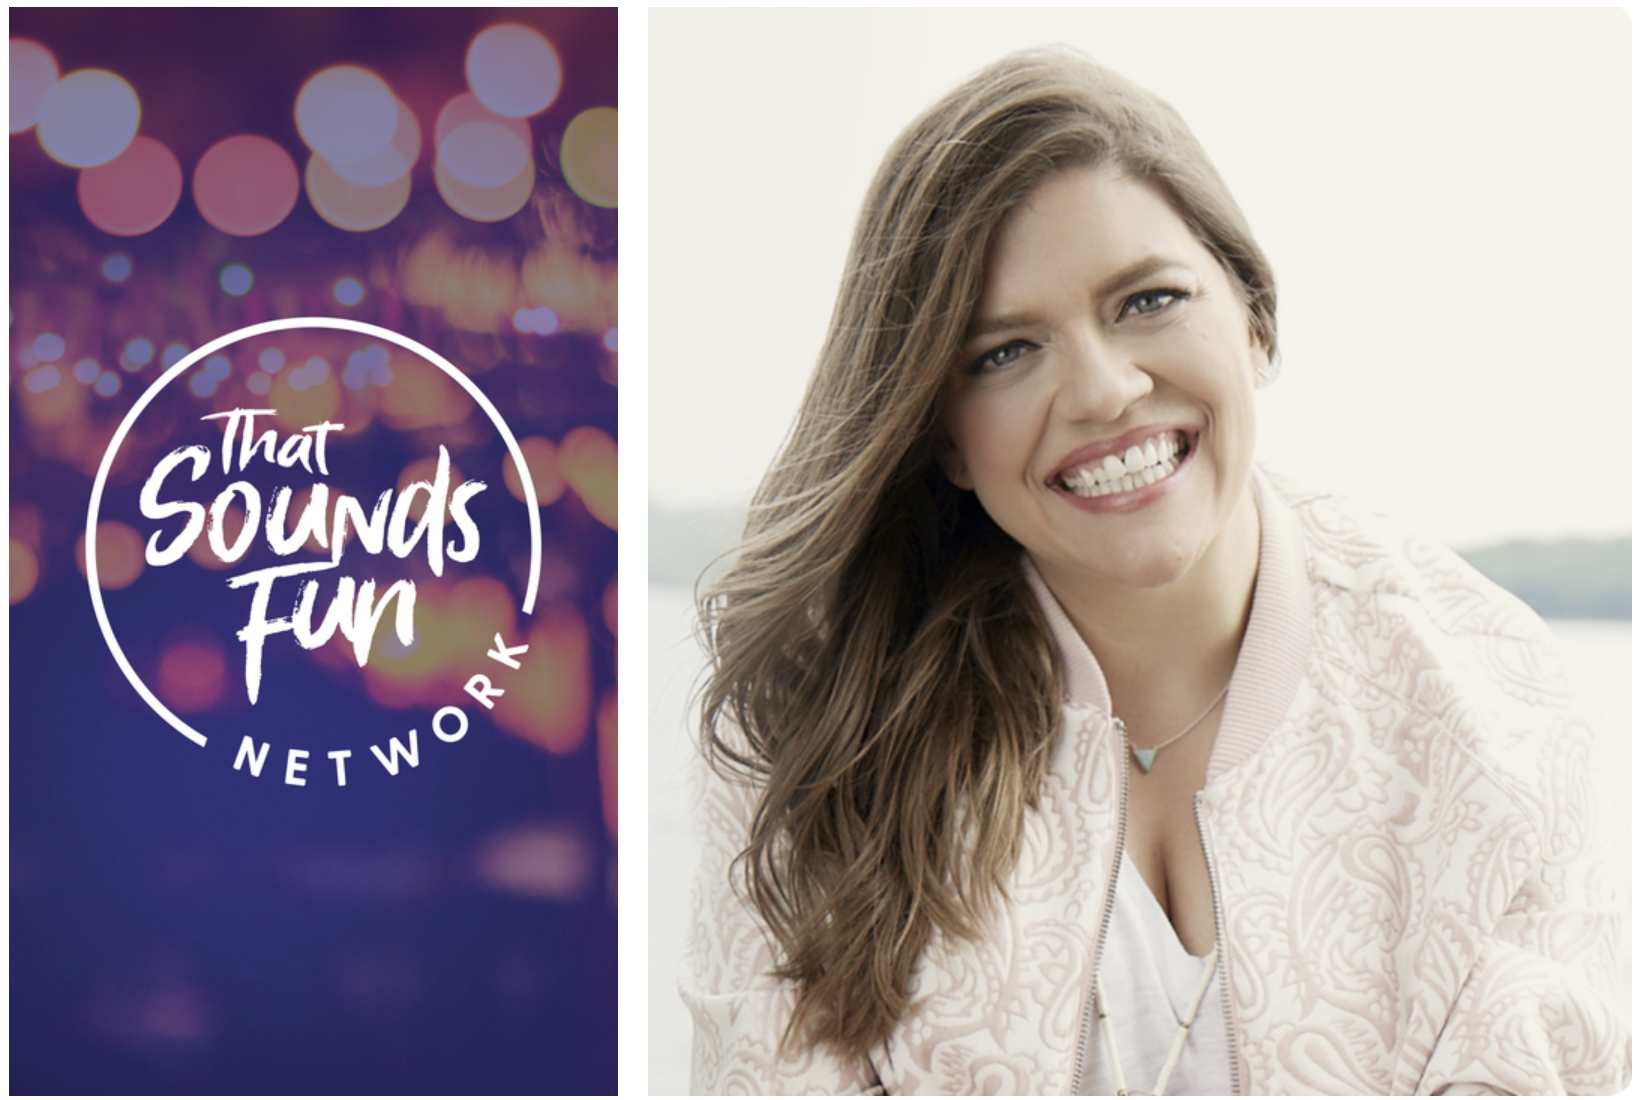 Podcast News: That Sounds Fun Network Launches Today by Popular Author, Podcaster Annie F. Downs